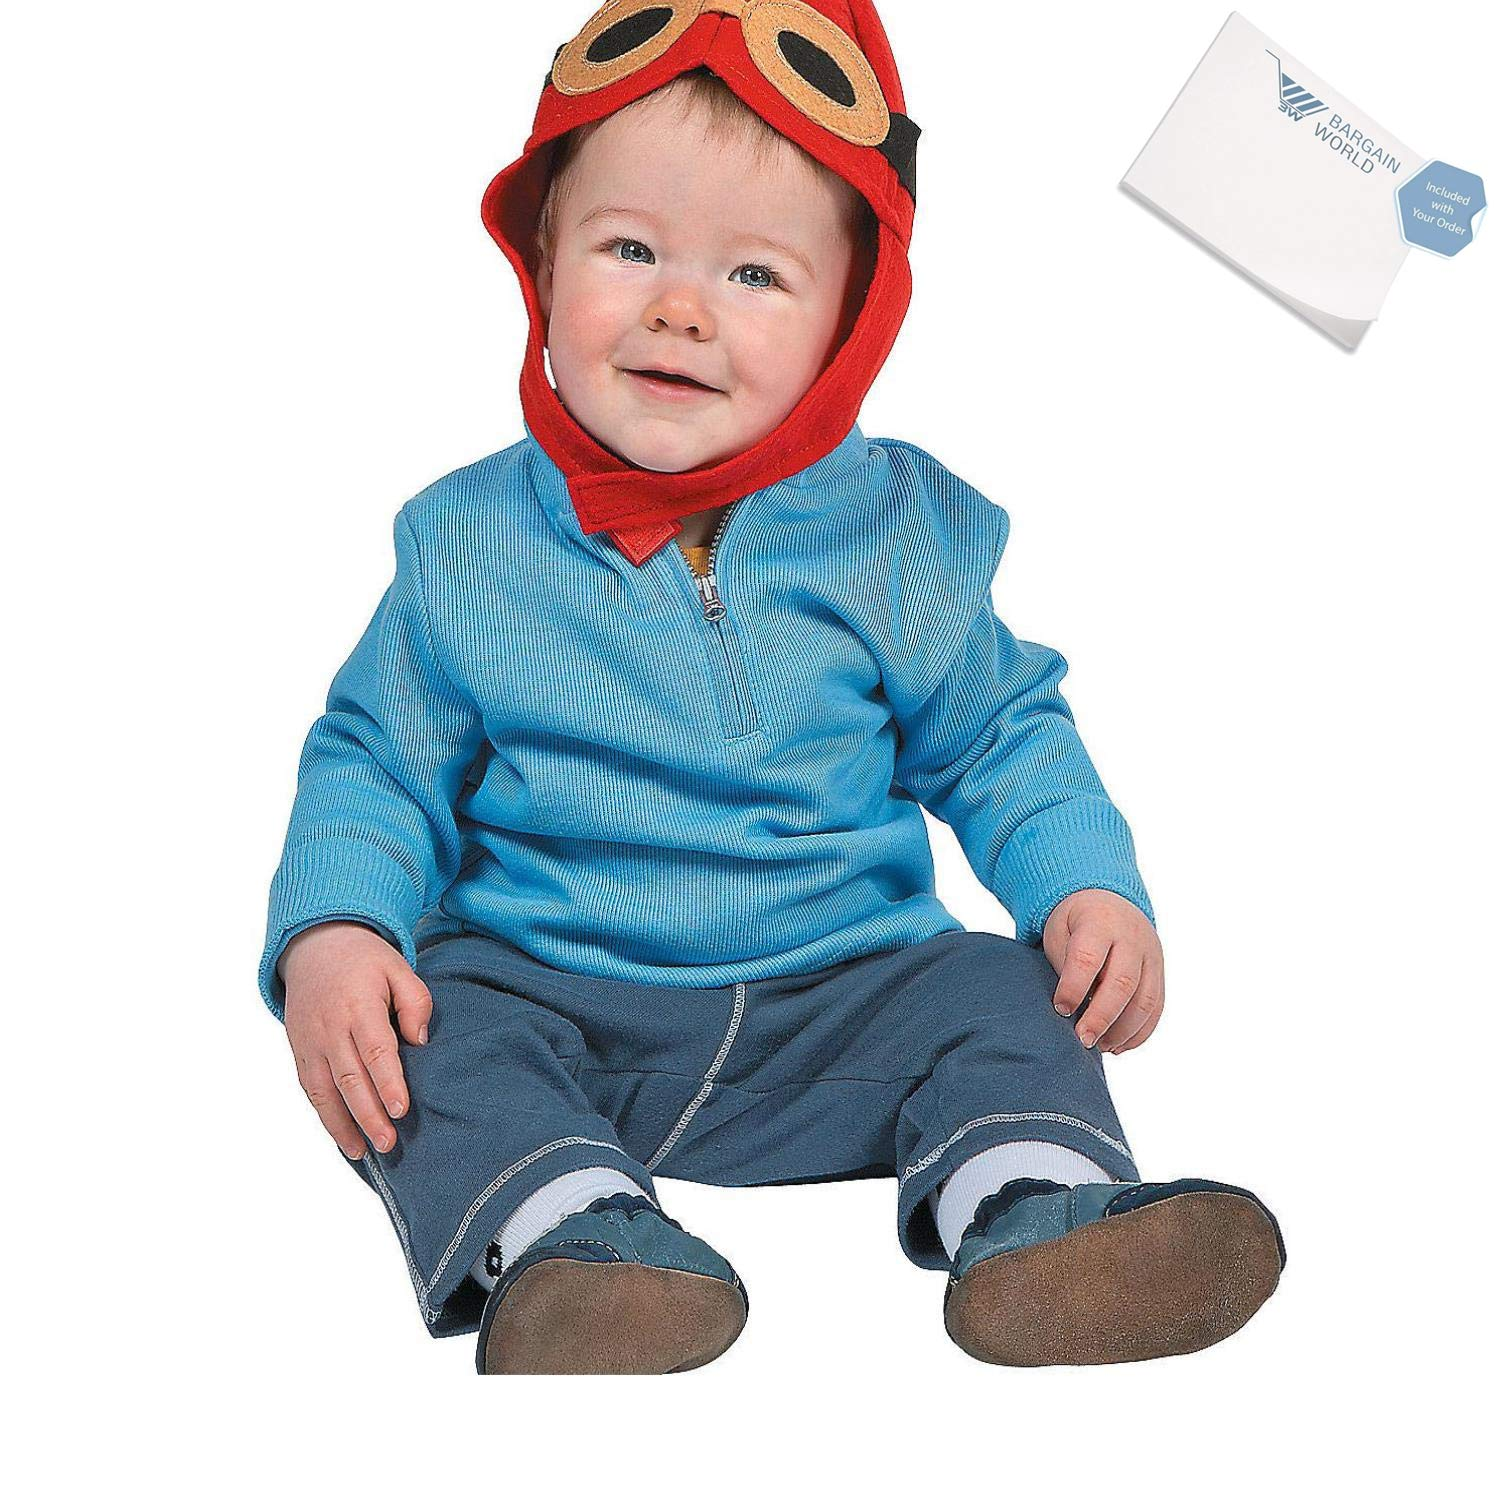 Felt Baby Aviator Hat With Sticky Notes